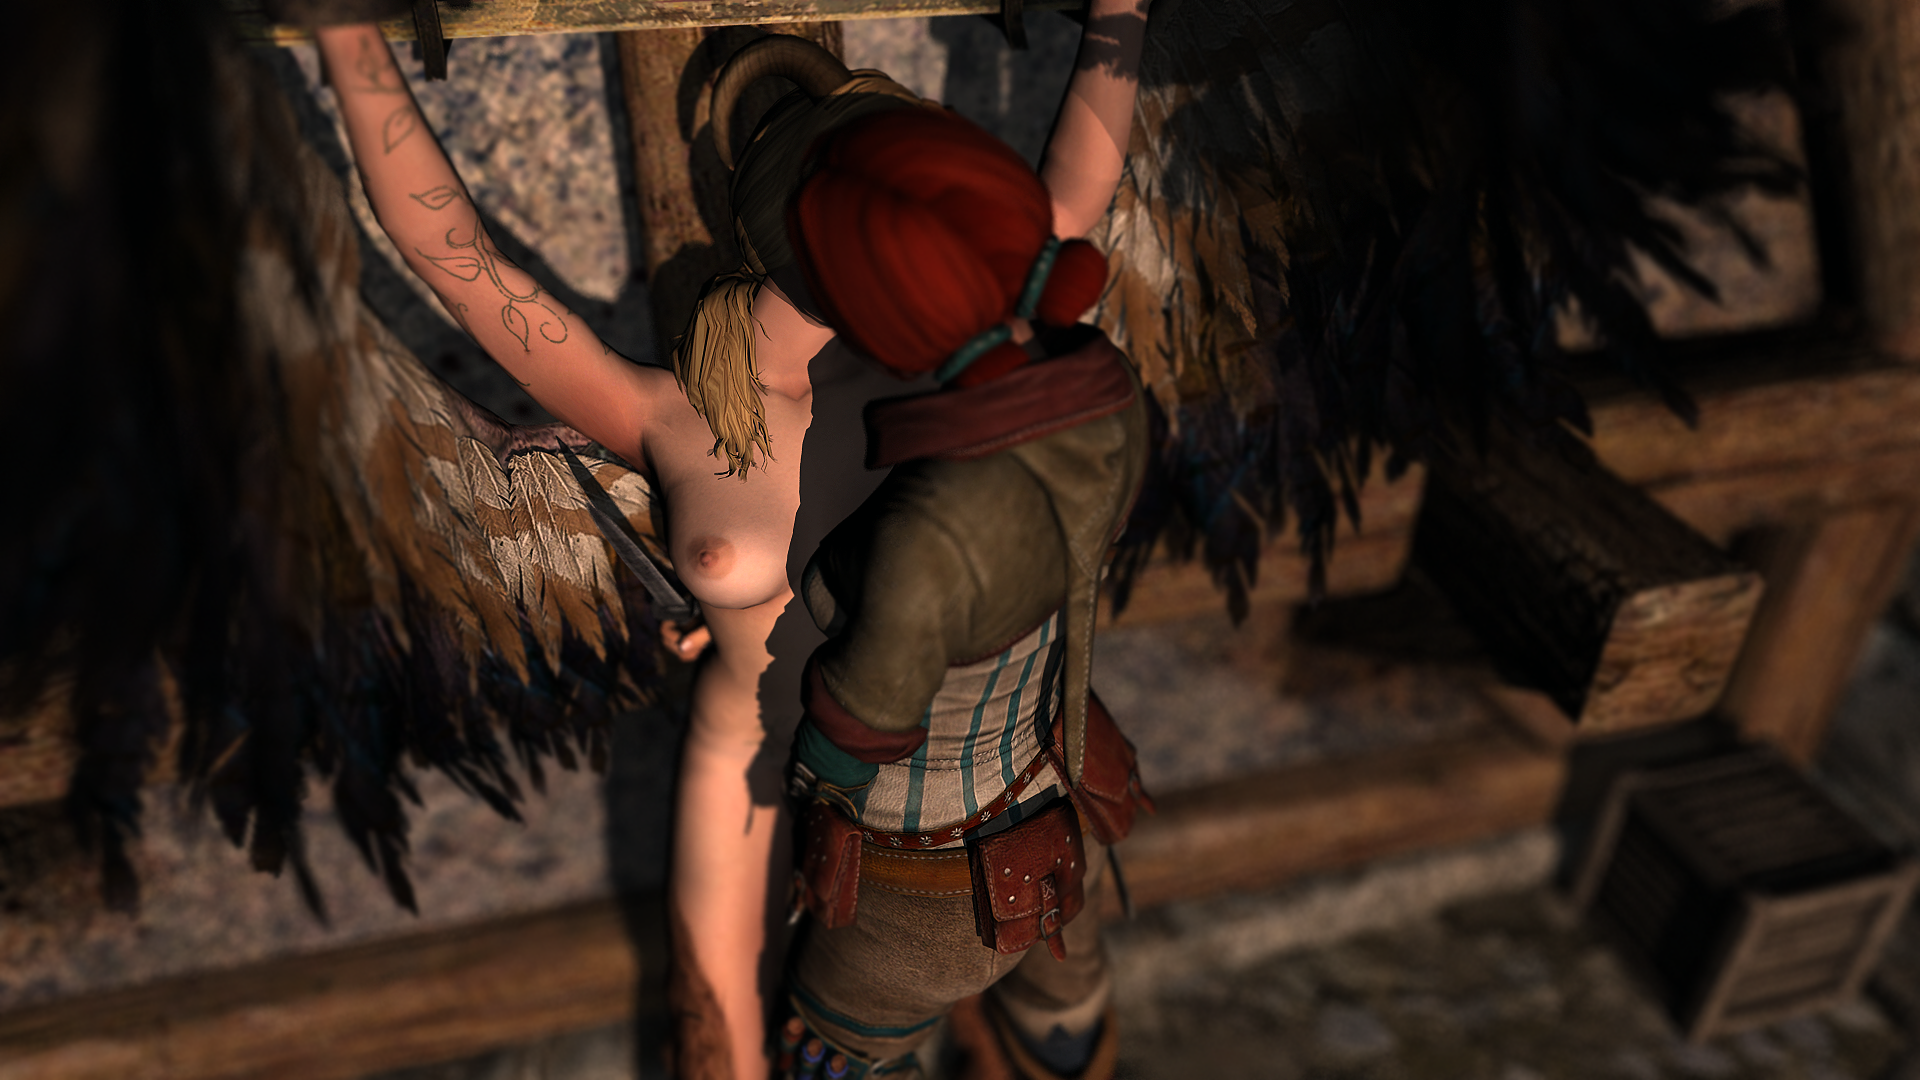 The witcher lesbian hentai sexual image